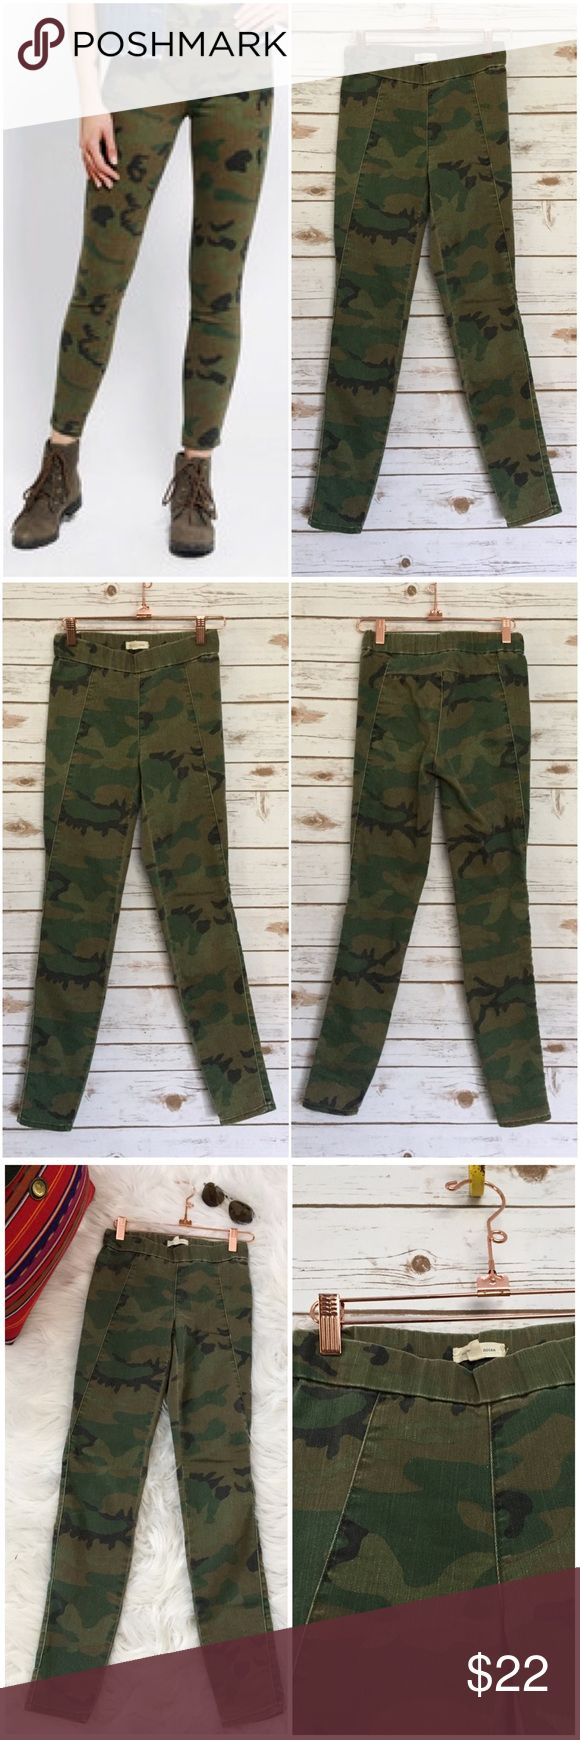 """Silence + Noise Camo Pull-On Skinny Pants Stretchy, fitted skinny pant from Silence + Noise with a banded elastic, pull-on waist. Topped with an allover camouflage print.  Ankle length.  Condition: In good preloved condition. Minimal wear. No holes, stains or damage. Pet free and smoke free.  Fabric: Cotton, polyester, spandex.  Machine wash.  Imported.  Approximate Measurements: Waist: 12"""" Across (Total 24"""") Inseam: 29"""" (L)   Front Rise: 8.5 (L)  Back Rise: 11 (L) Leg Opening: 4.75"""" flat…"""